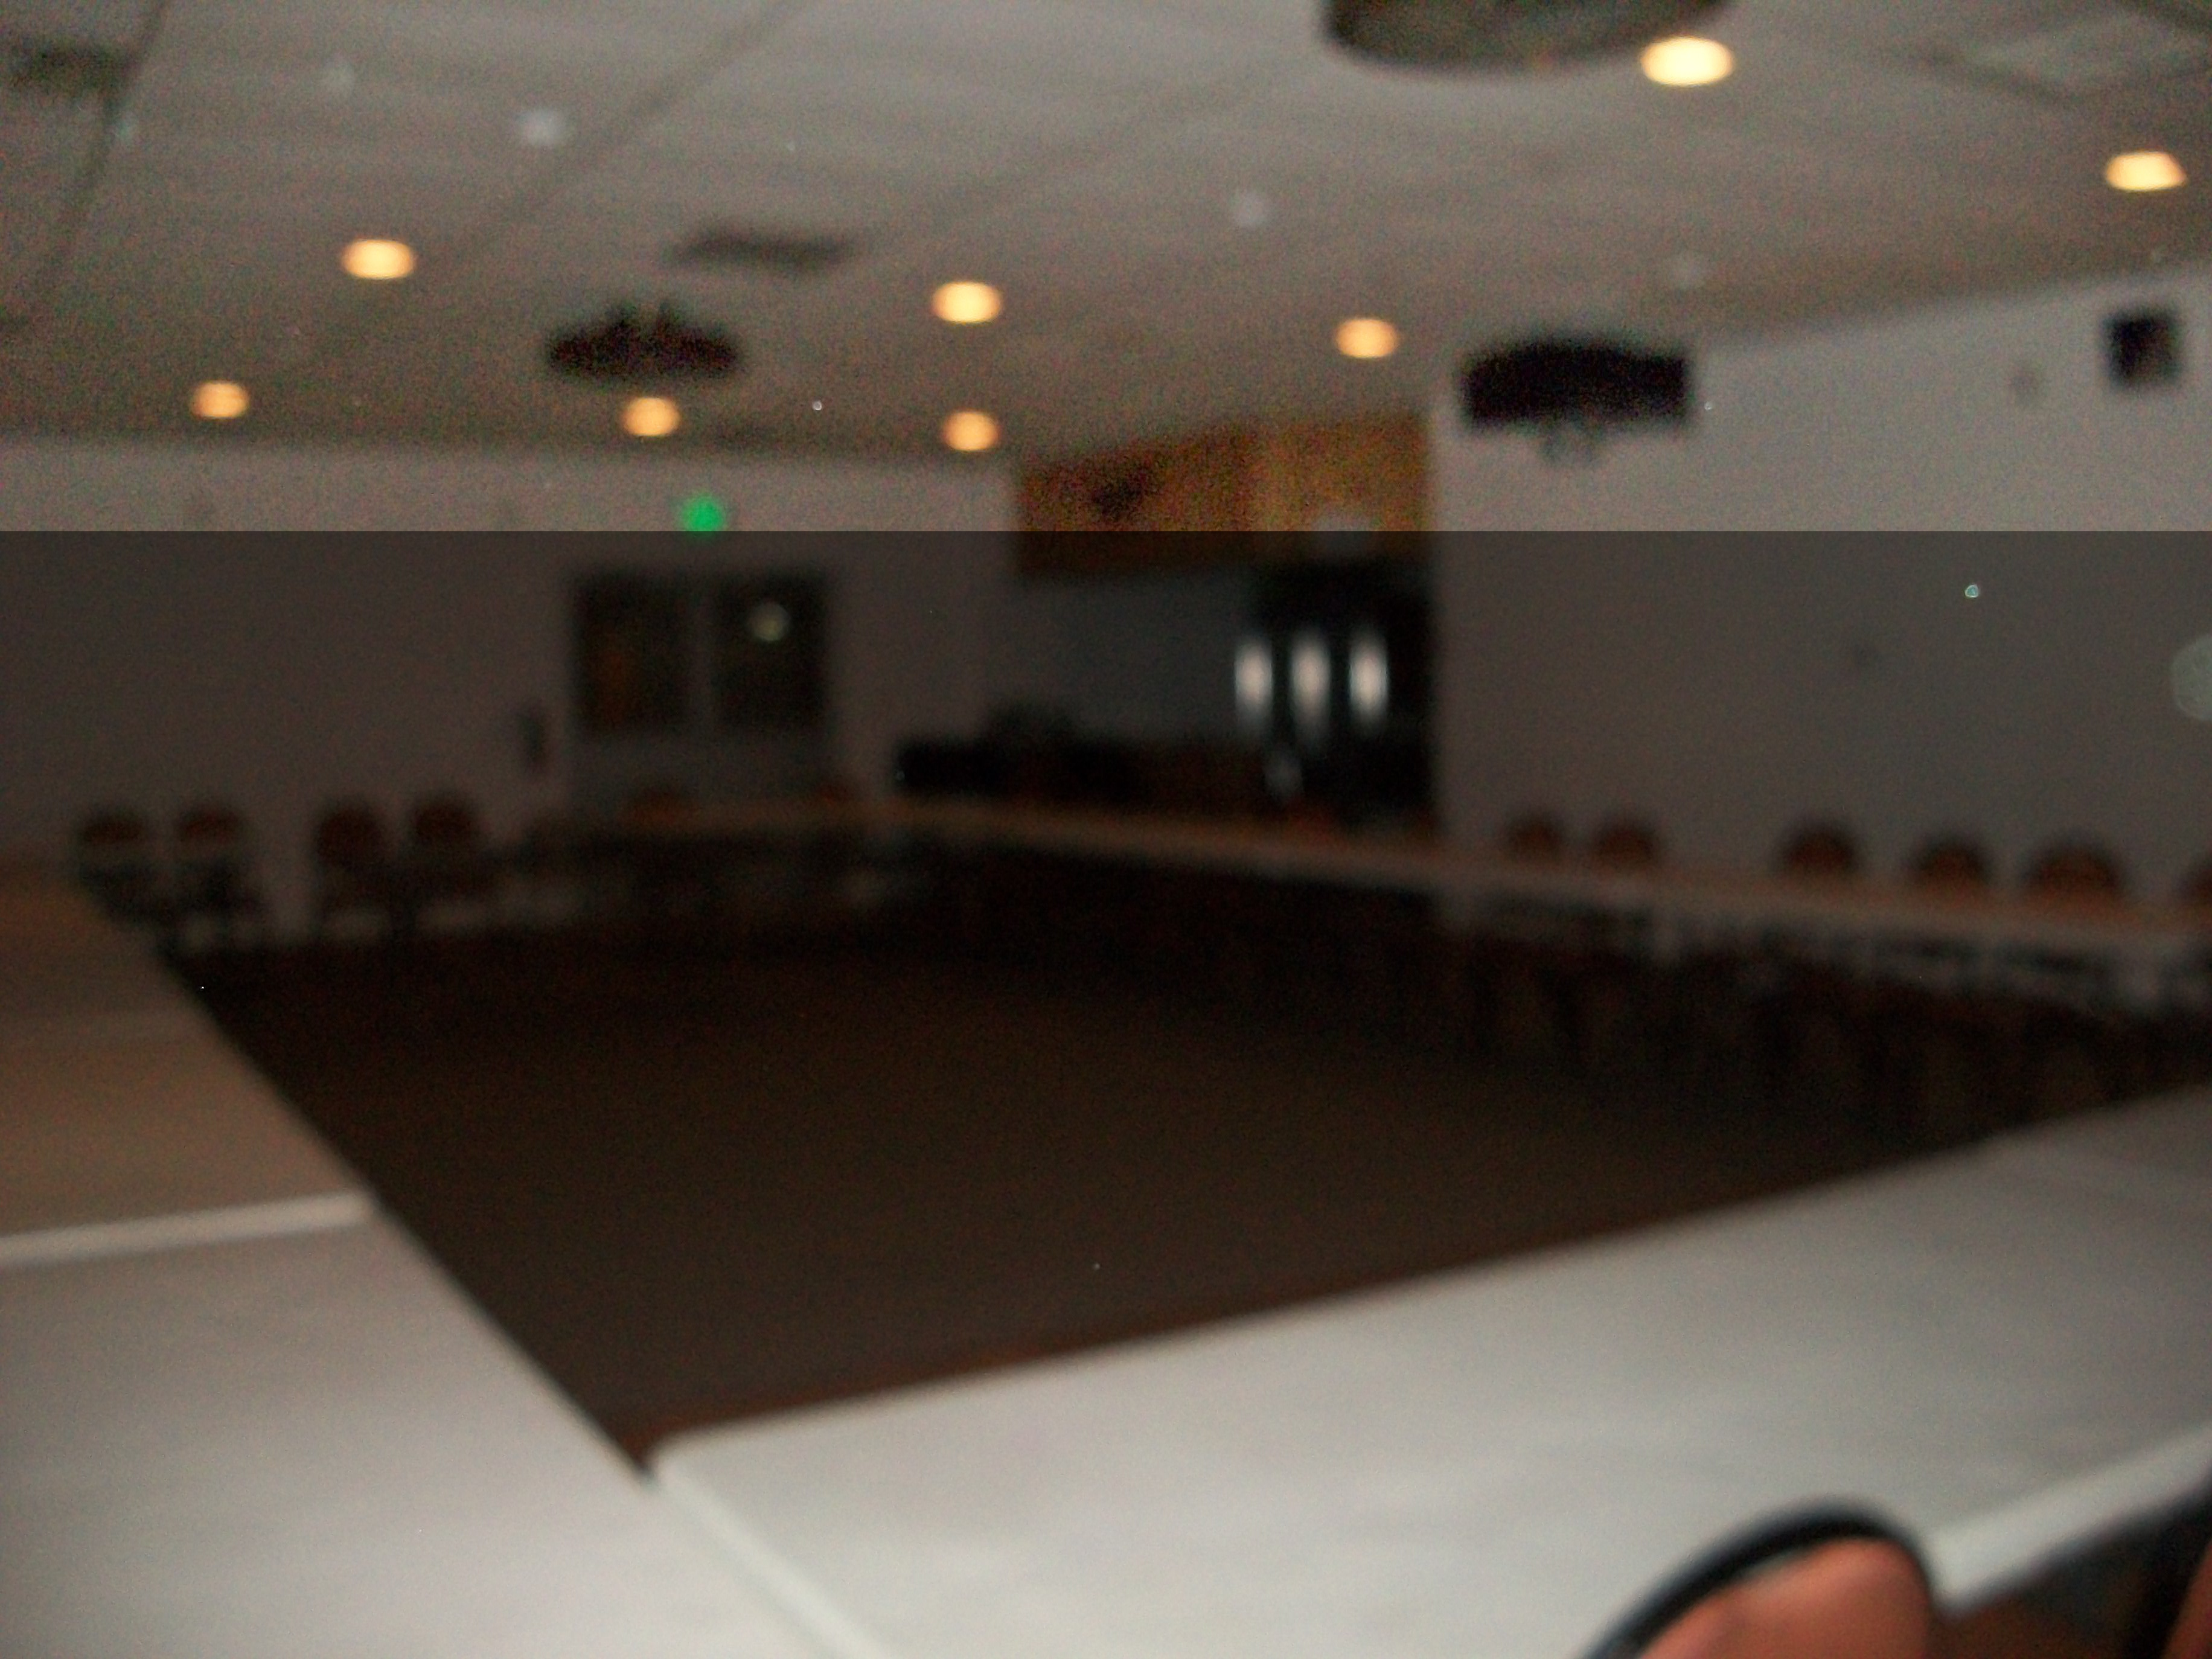 A picture of the large banquet room, taken from another angle, with its tables arranged in a large square for meetings. The room's primary entrance is in the background.